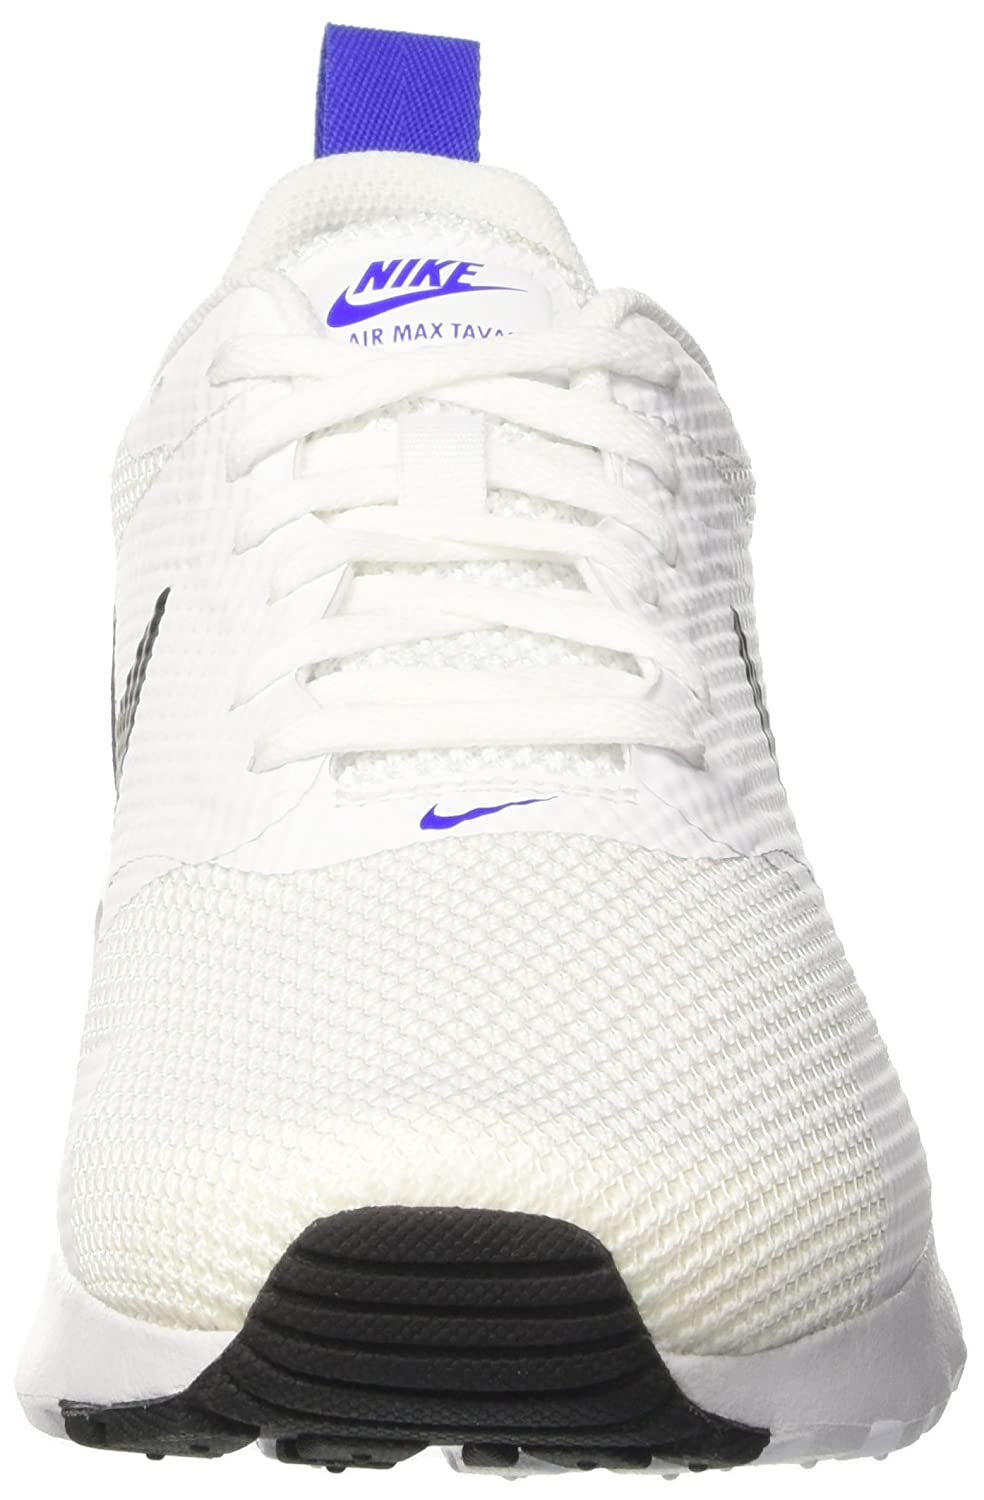 innovative design 7fe64 25bcf Nike Air Max Tavas, Sneaker a Collo Basso Uomo, Multicolore  (Blanco Negro Azul), 43 EU  MainApps  Amazon.it  Scarpe e borse